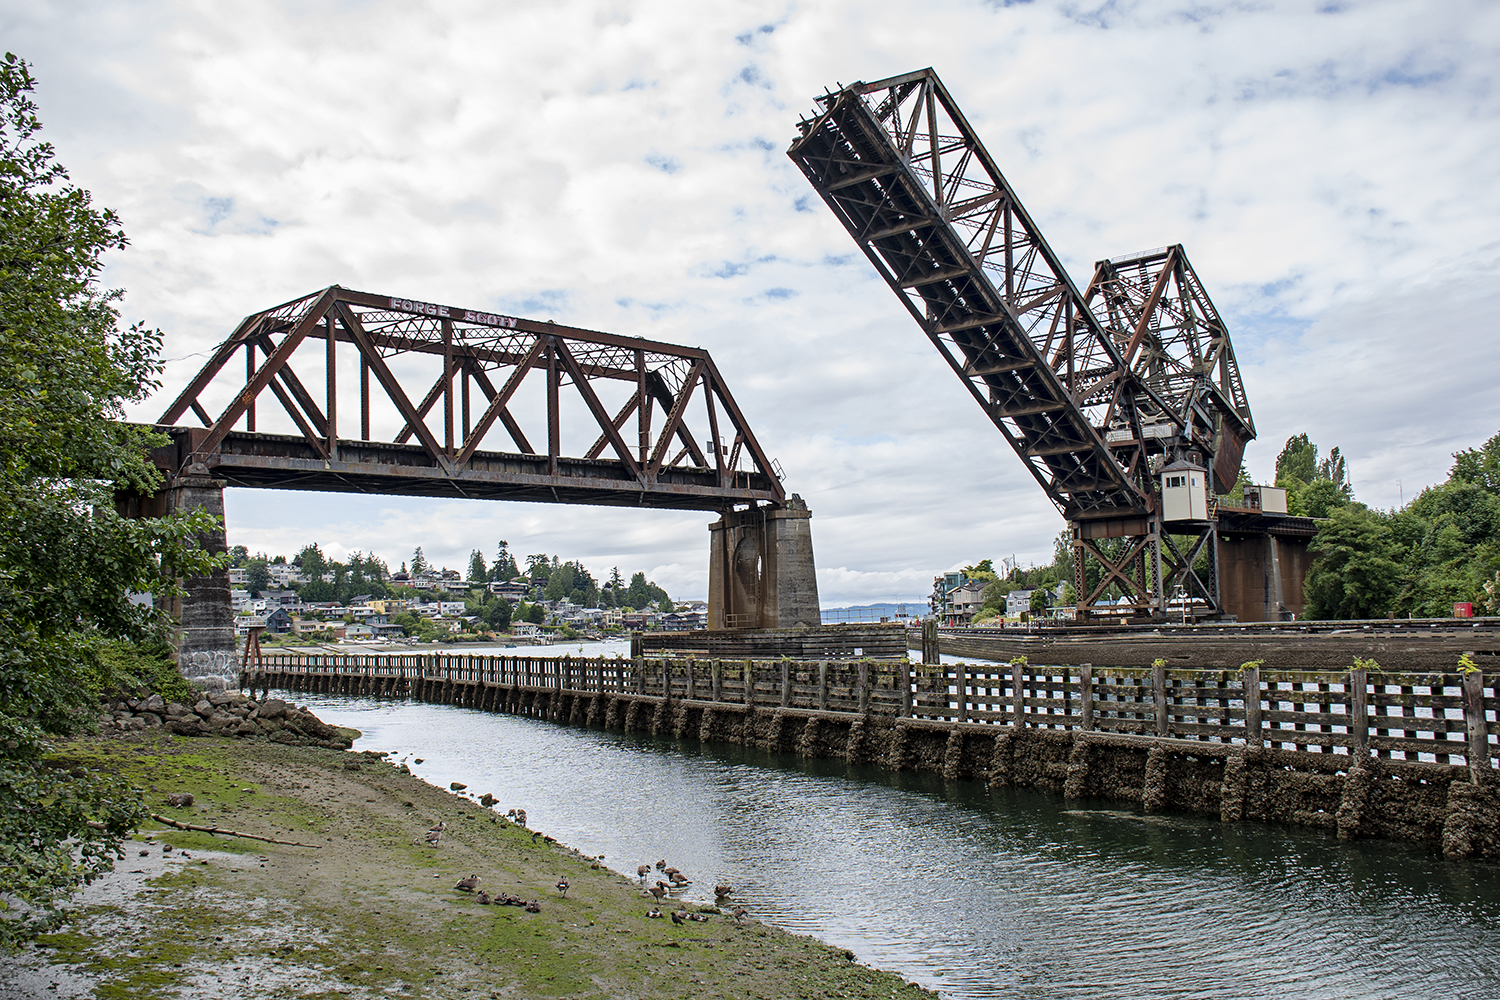 Built in 1914 by the Great Northern Railway, the Salmon Bay Bridge, or Bridge No. 4, is a Strauss Heel-trunnion, single-leaf bascule bridge that spans across Salmon Bay near Commodore Park. (Image: Rachael Jones / Seattle Refined)